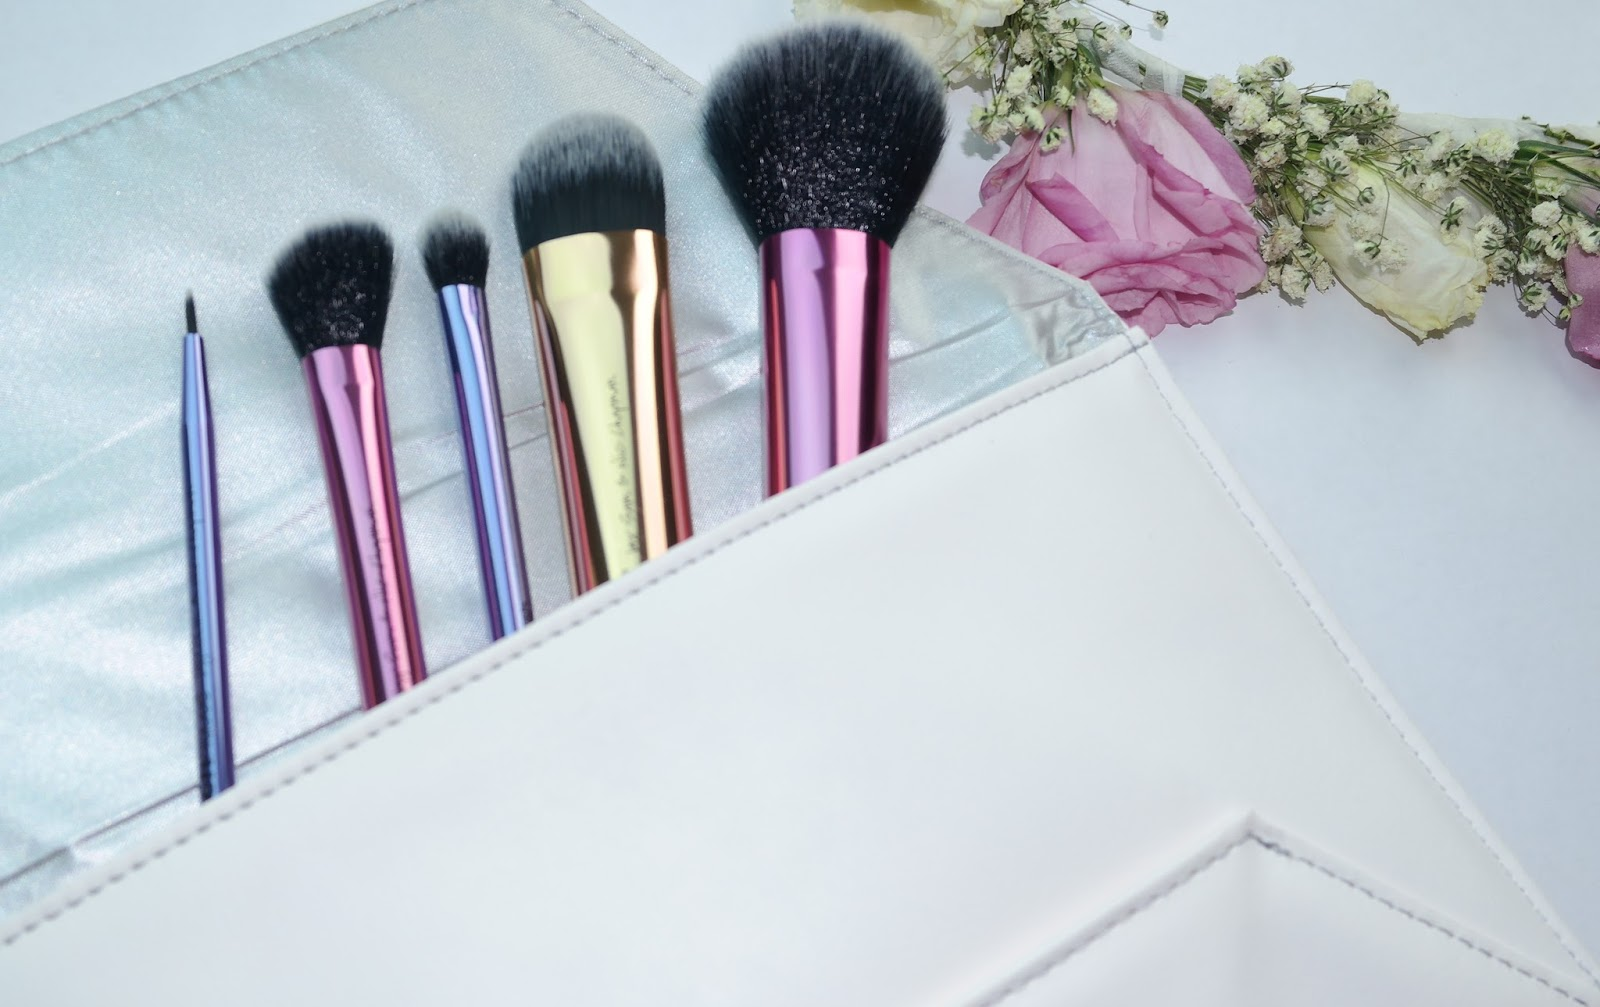 Deluxe gift brush set by real techniques